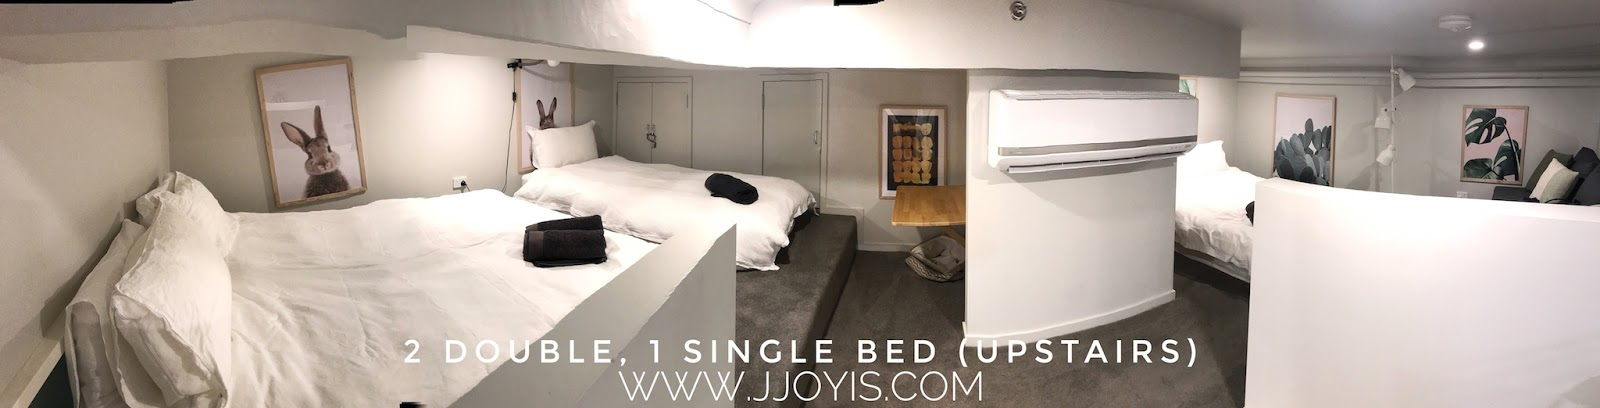 Airbnb for large groups (sleep 7) in Brisbane CBD loft